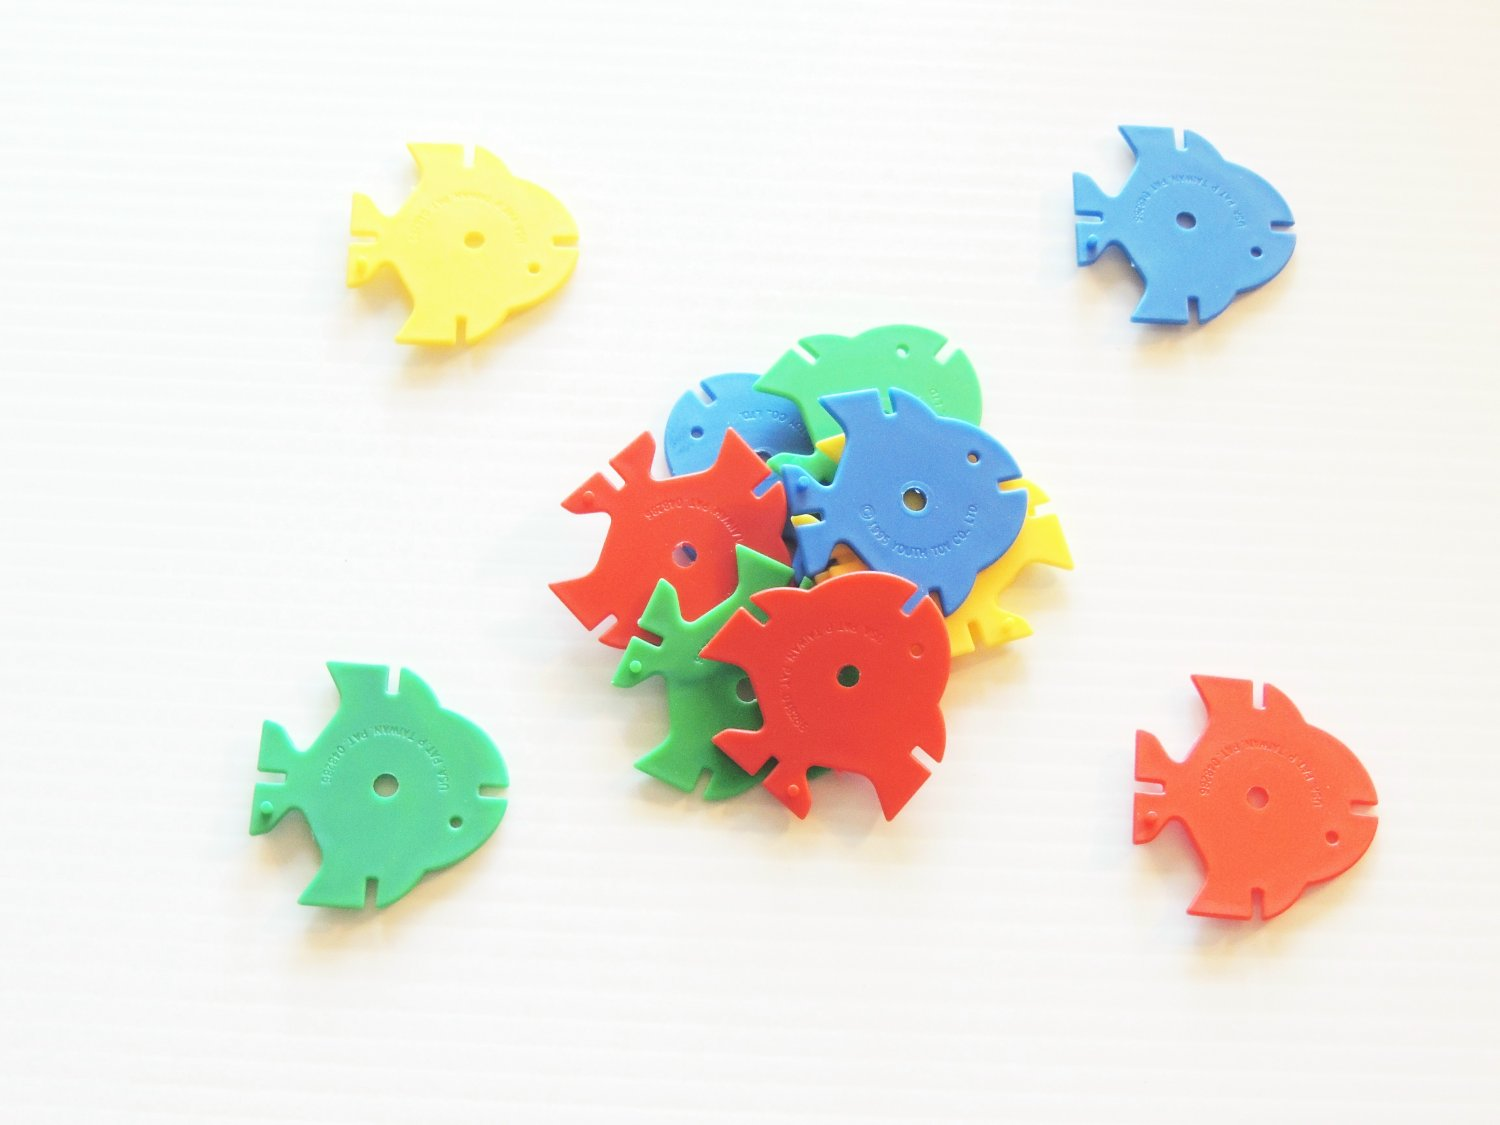 12 Mediun Drilled Fish bird toy parts parrots cage kids